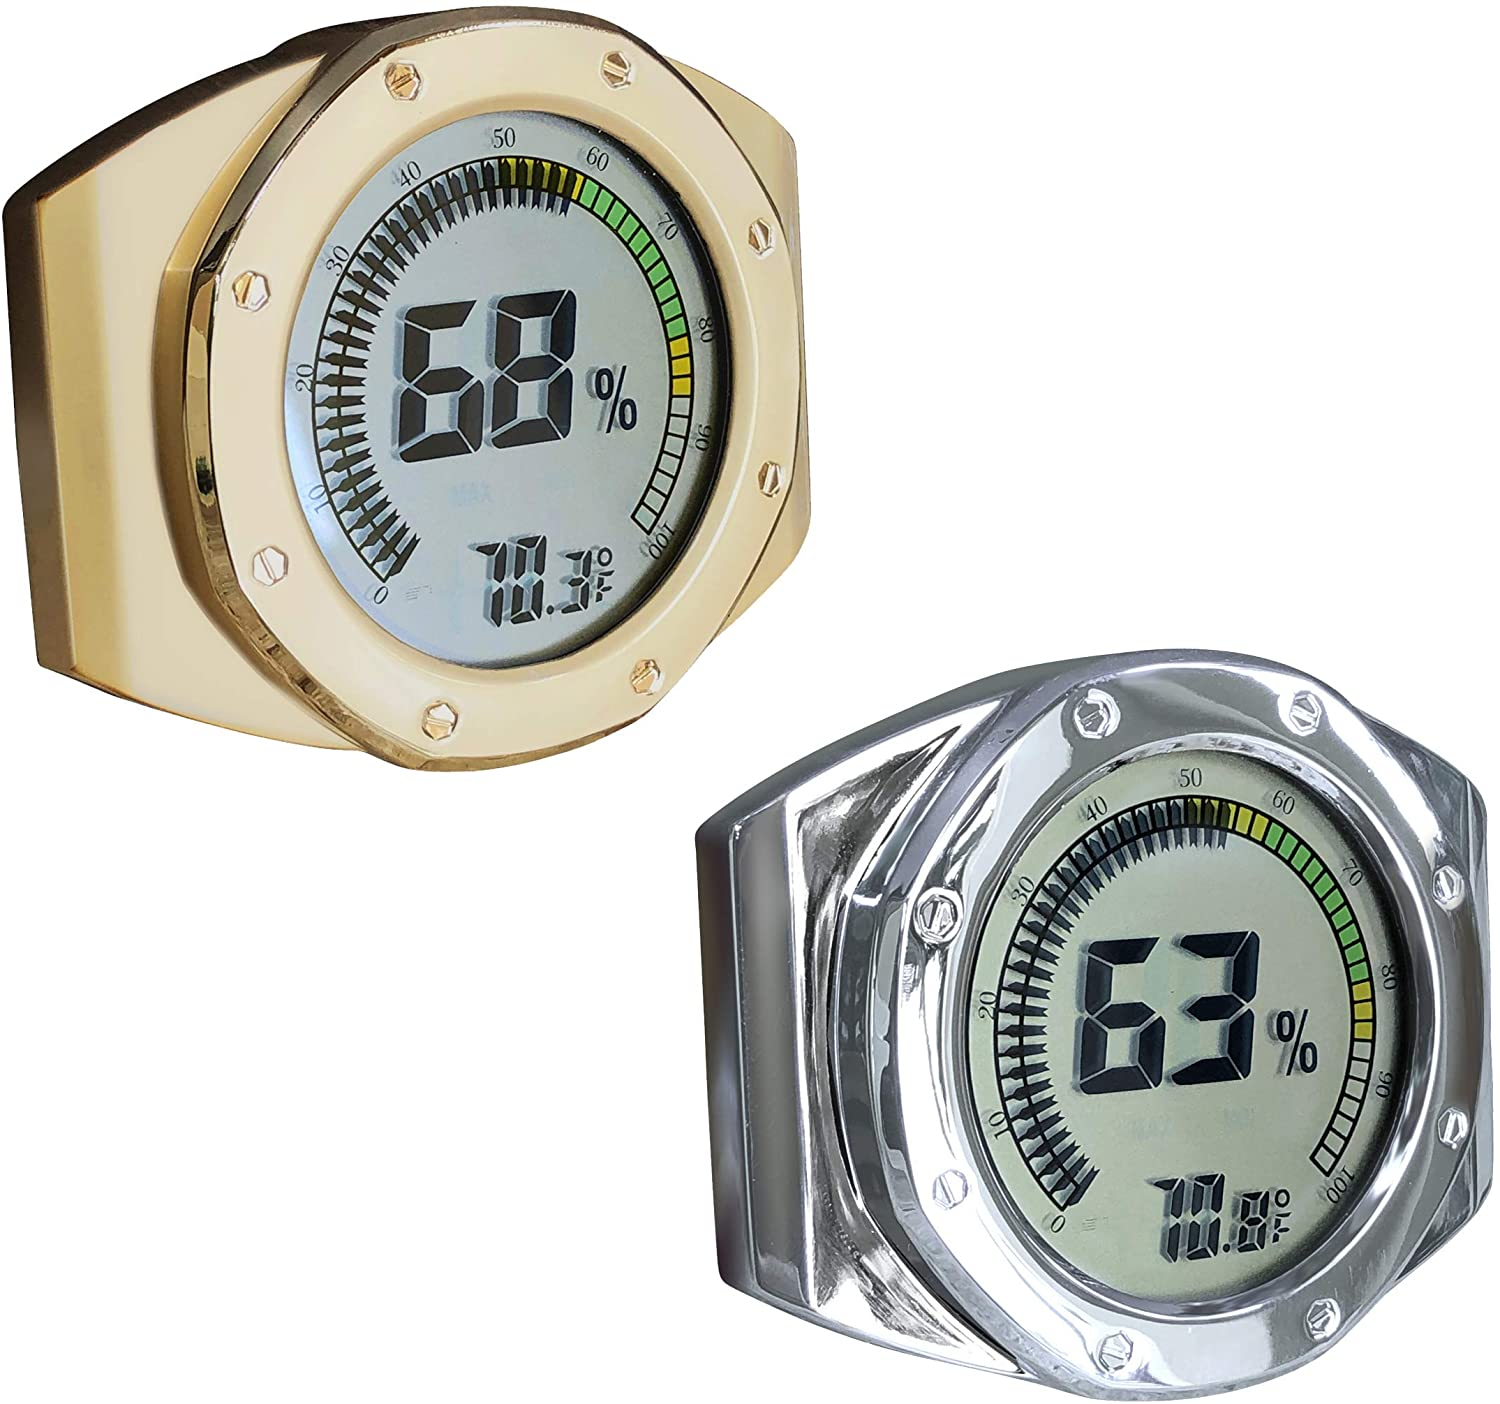 Prestige Import Group Distinctive Watch Style Bezel & Case Thermometer Hygrometer for Humidity & Temperature Monitoring with Digital LCD Display Gauge - 2 Pack (1 Silver, 1 Gold)